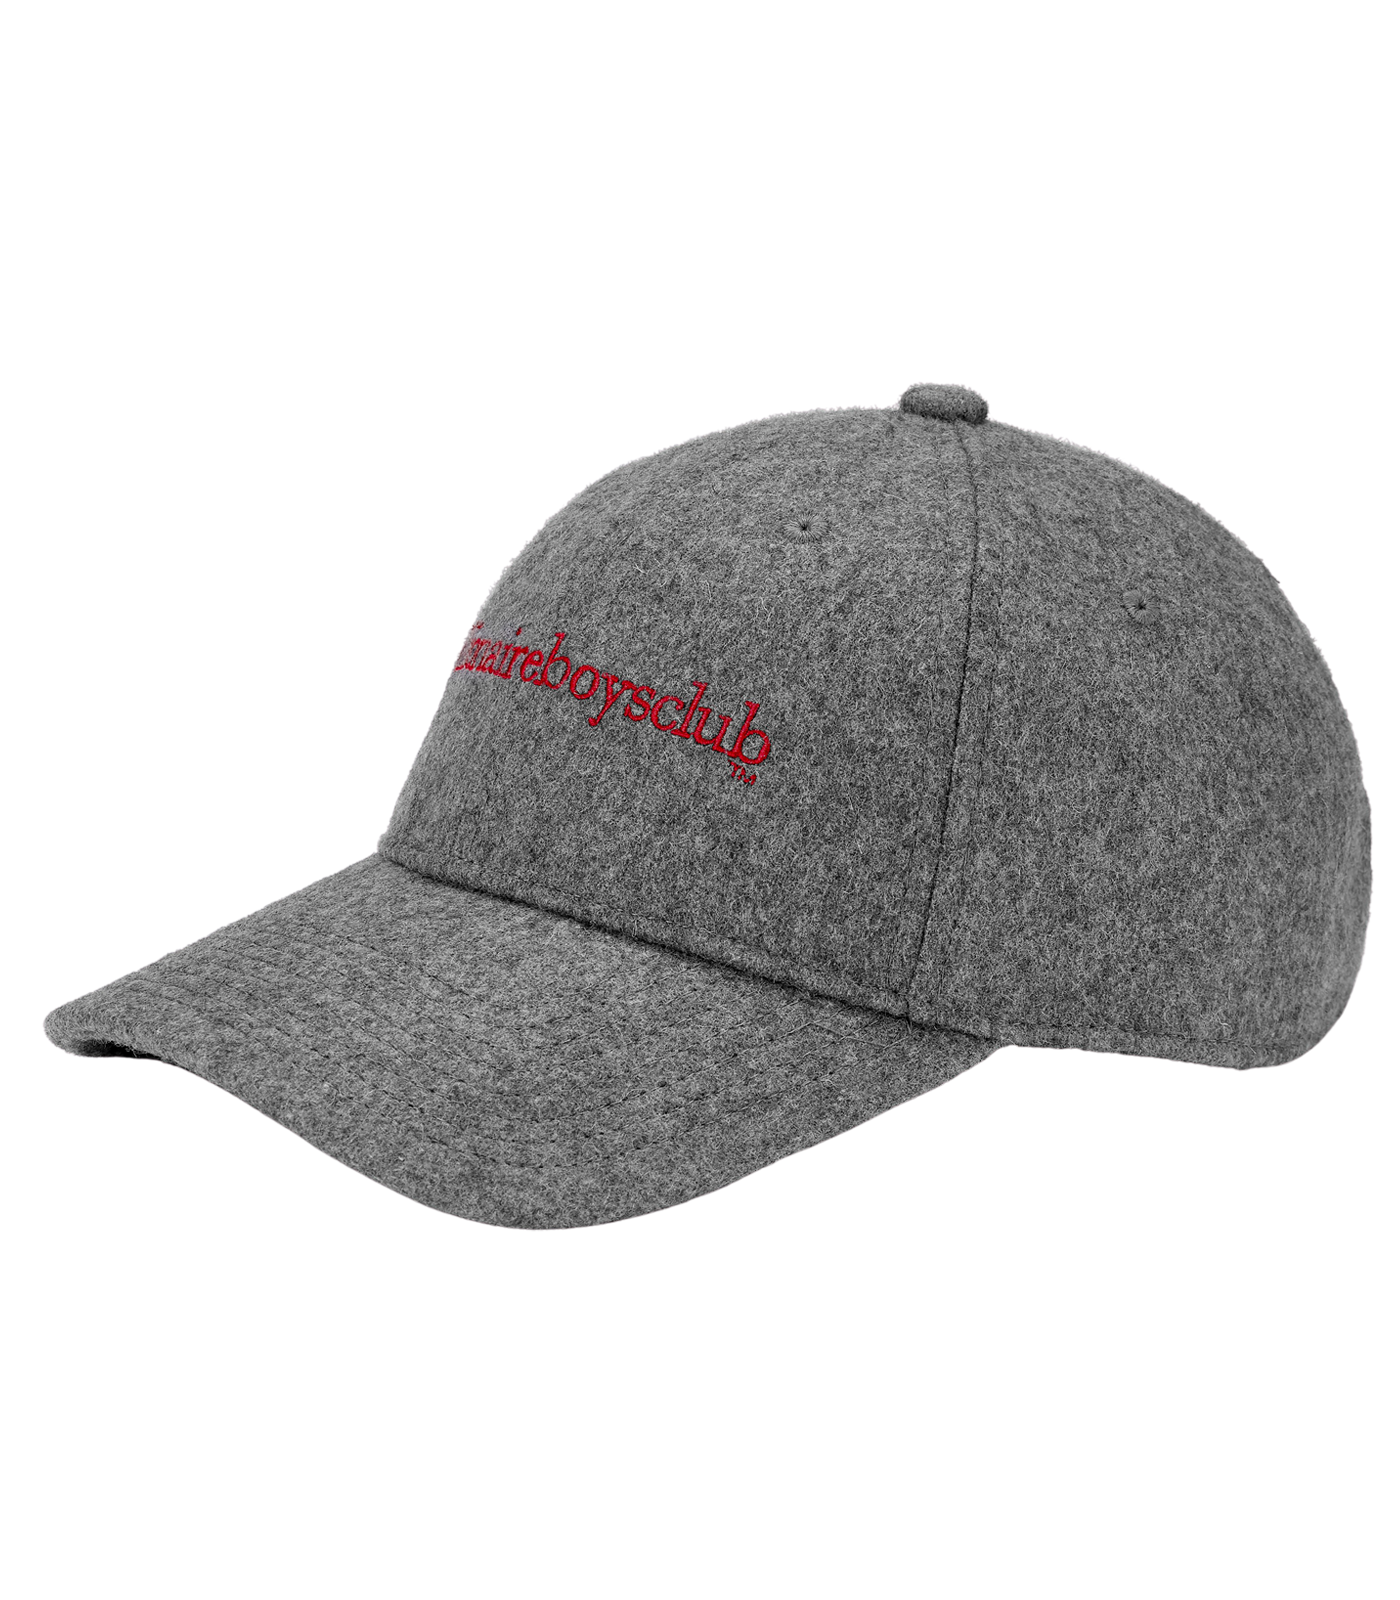 EMBROIDERED WOOL CURVED VISOR CAP - GREY